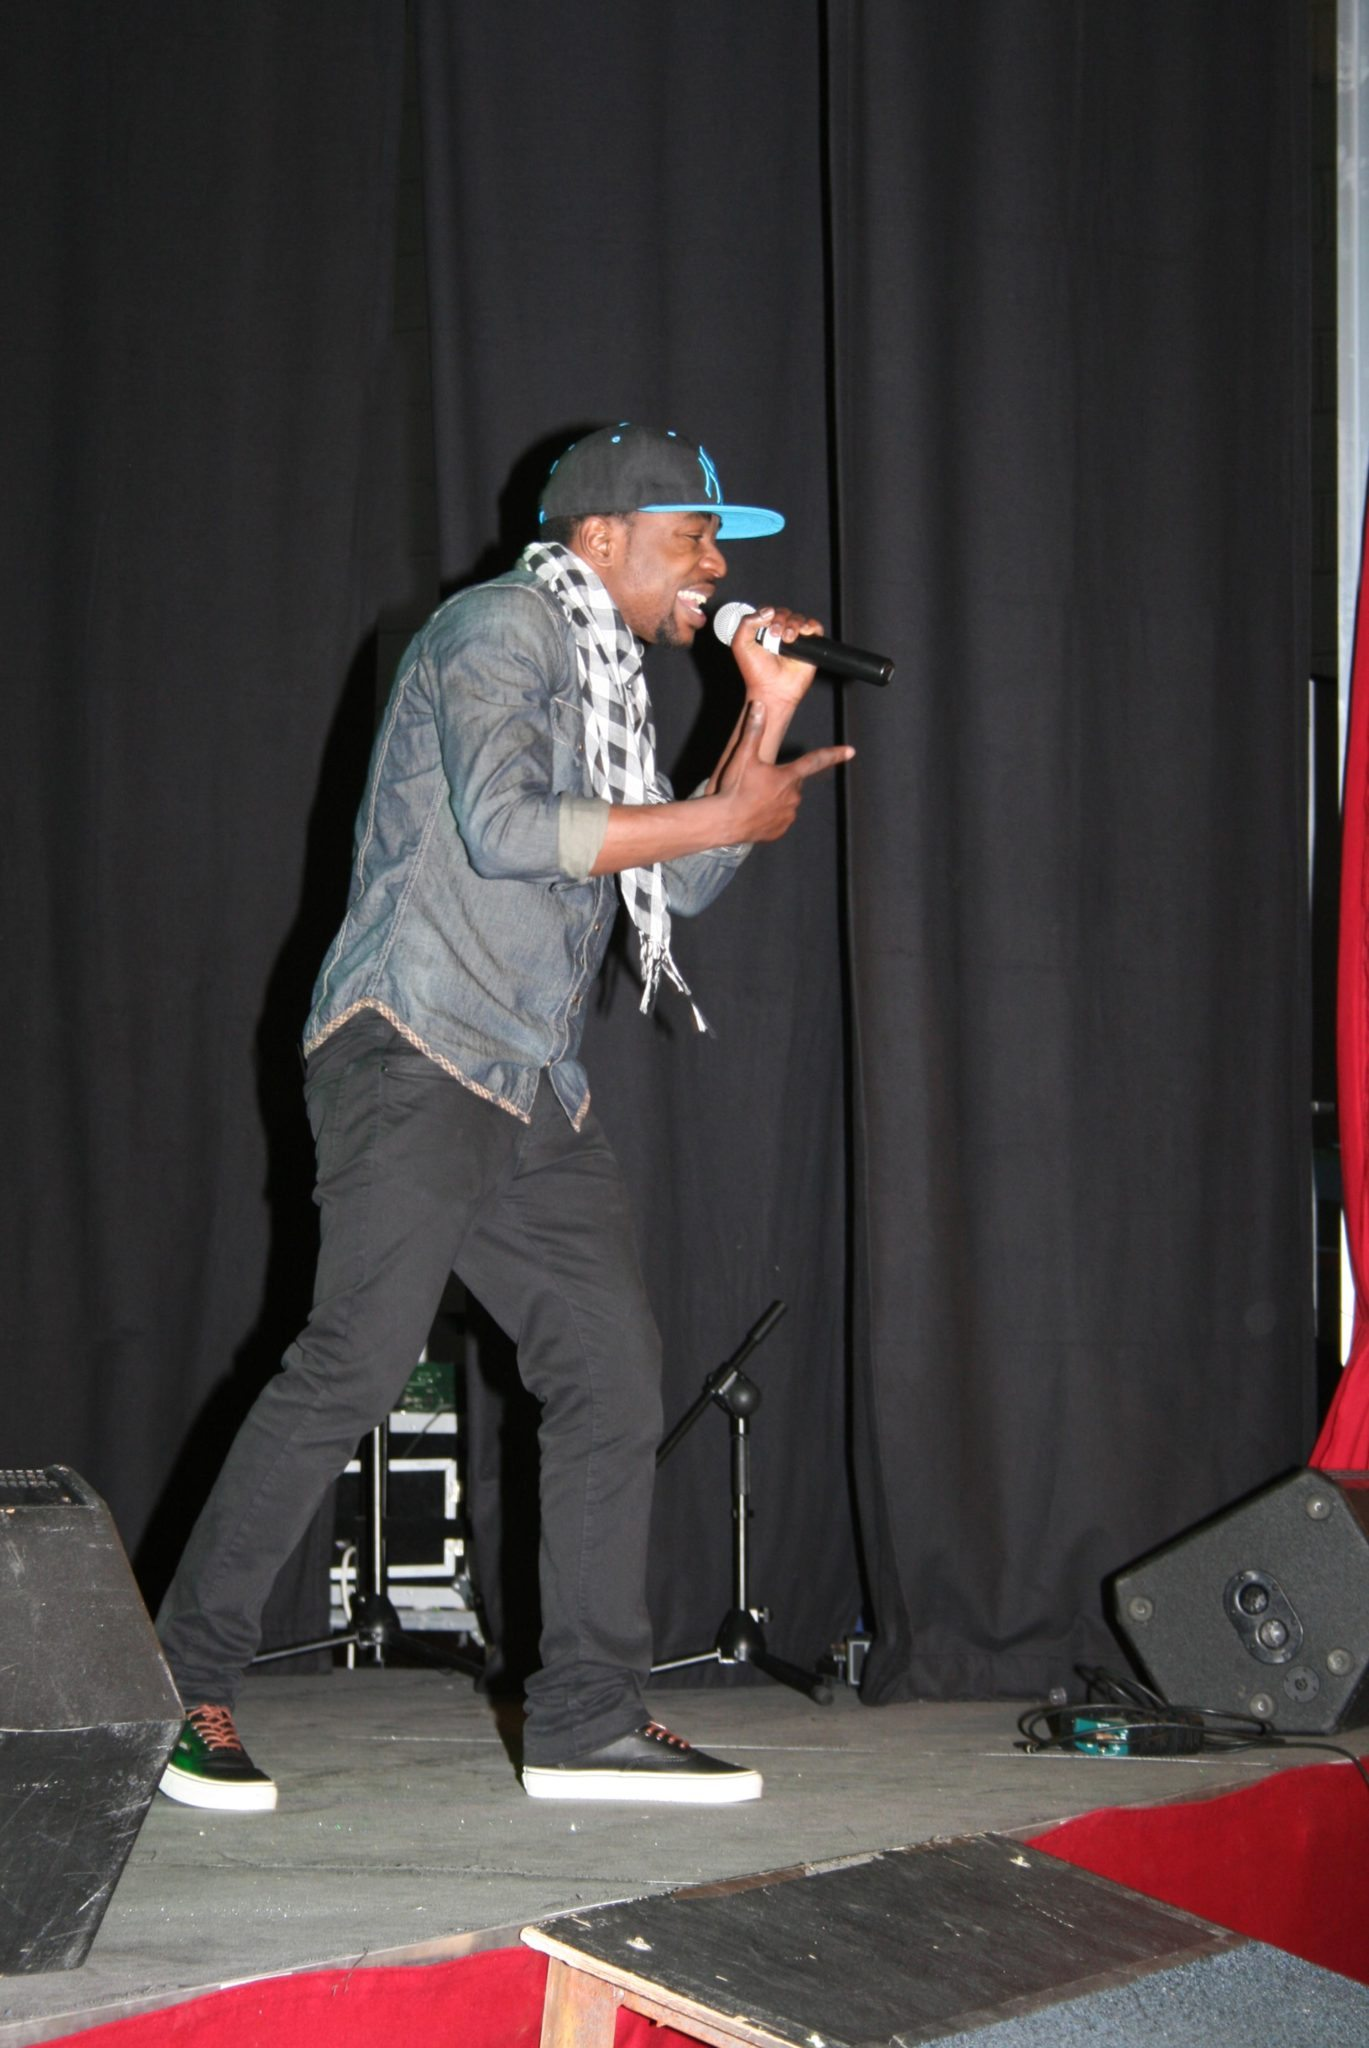 Desmond College Students performing in the Desmond Factor 2014